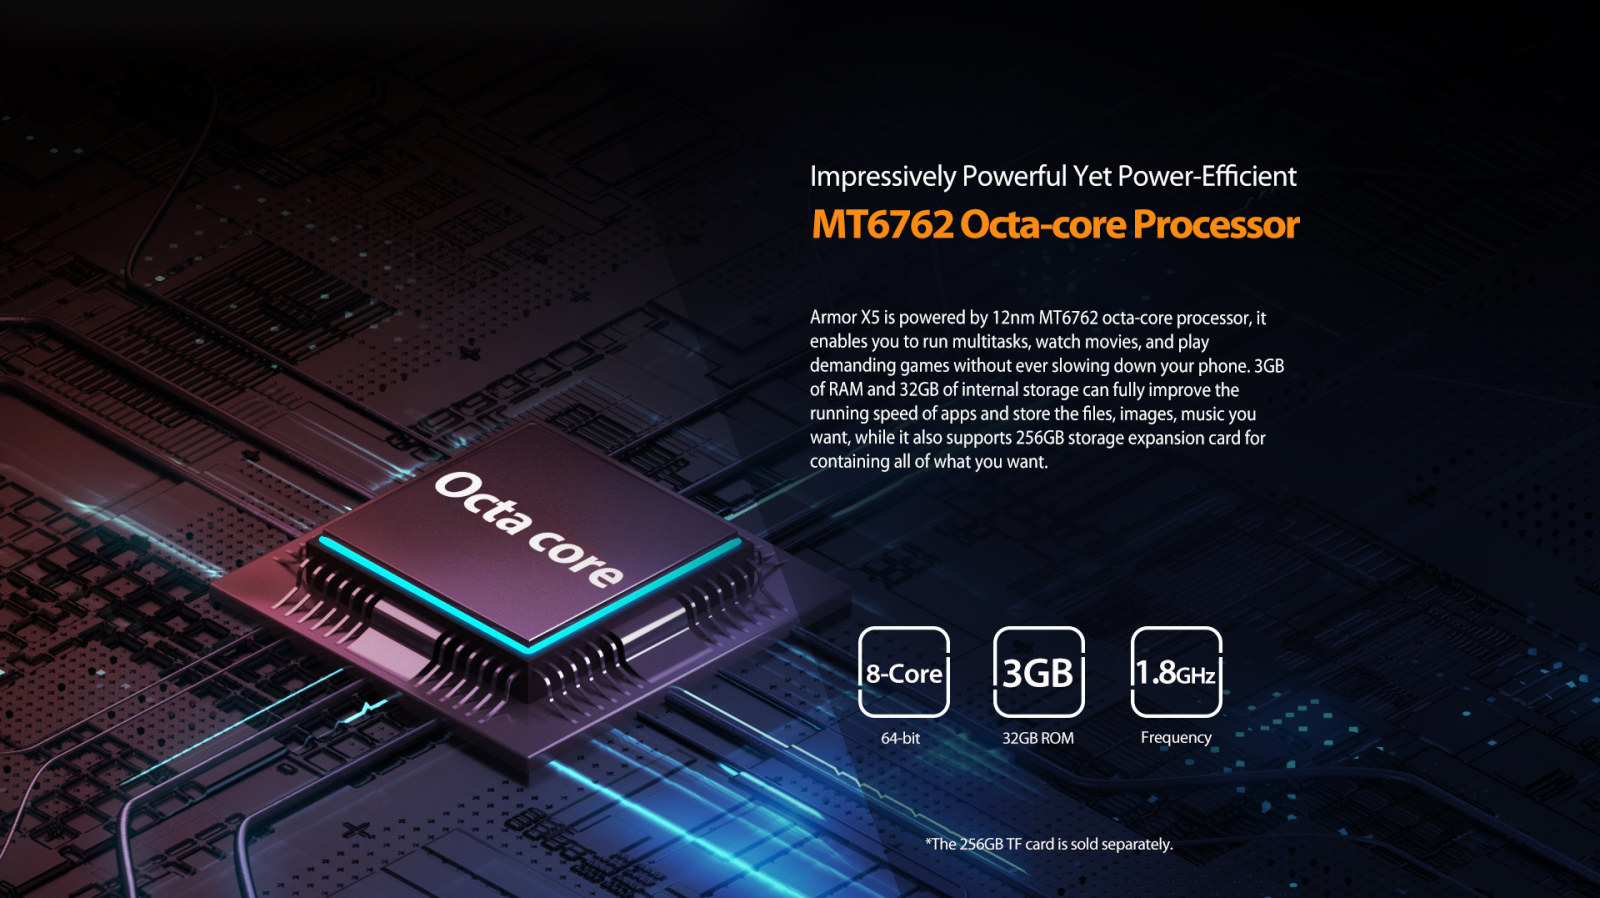 8 core 64 bit 1.8 GHz processing speed